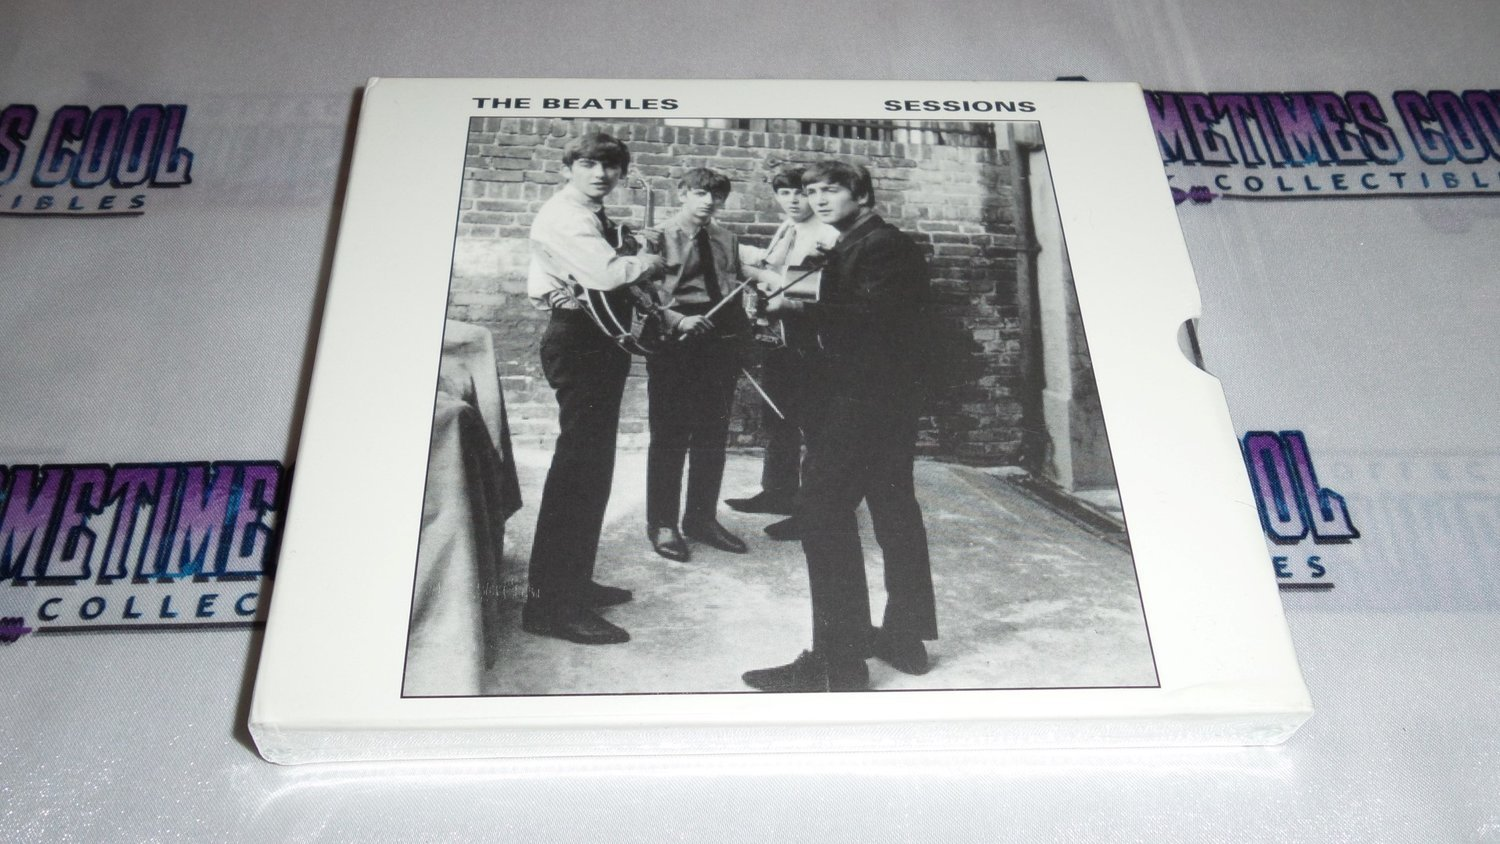 the Beatles : Sessions CD